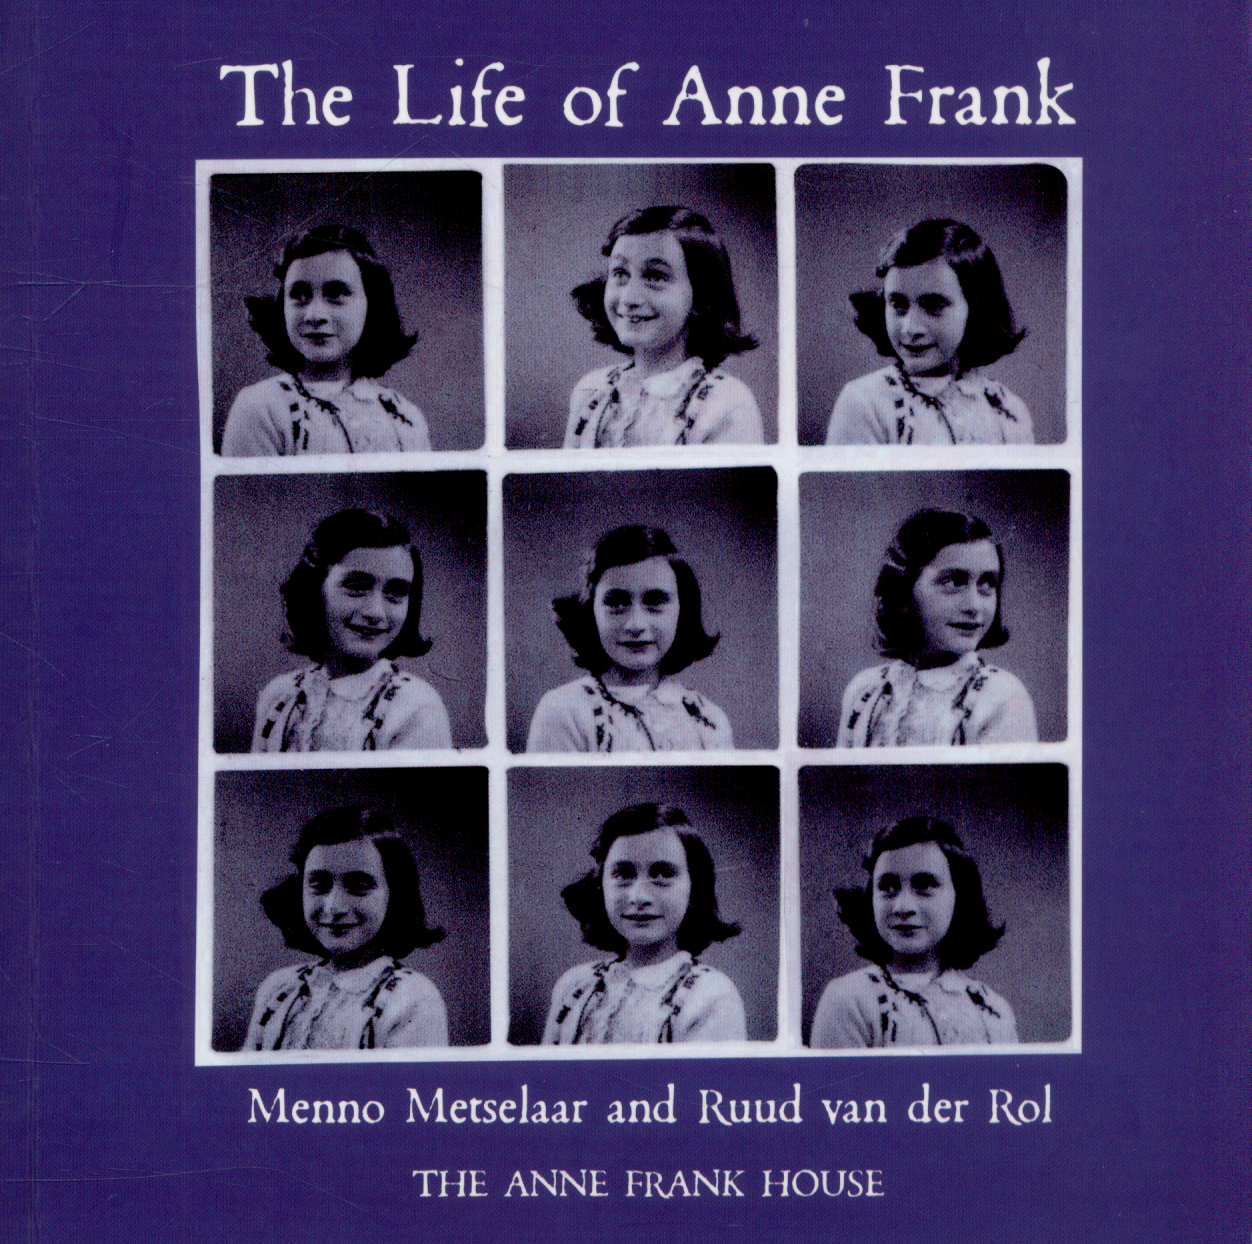 the life of anne frank The trump campaign did not immediately respond to a request for comment schloss survived auschwitz, where frank's mother died anne frank perished at the bergen-belsen concentration camp, her diary becoming a famous account of life as a jewish family in hitler's nazi germany schloss.